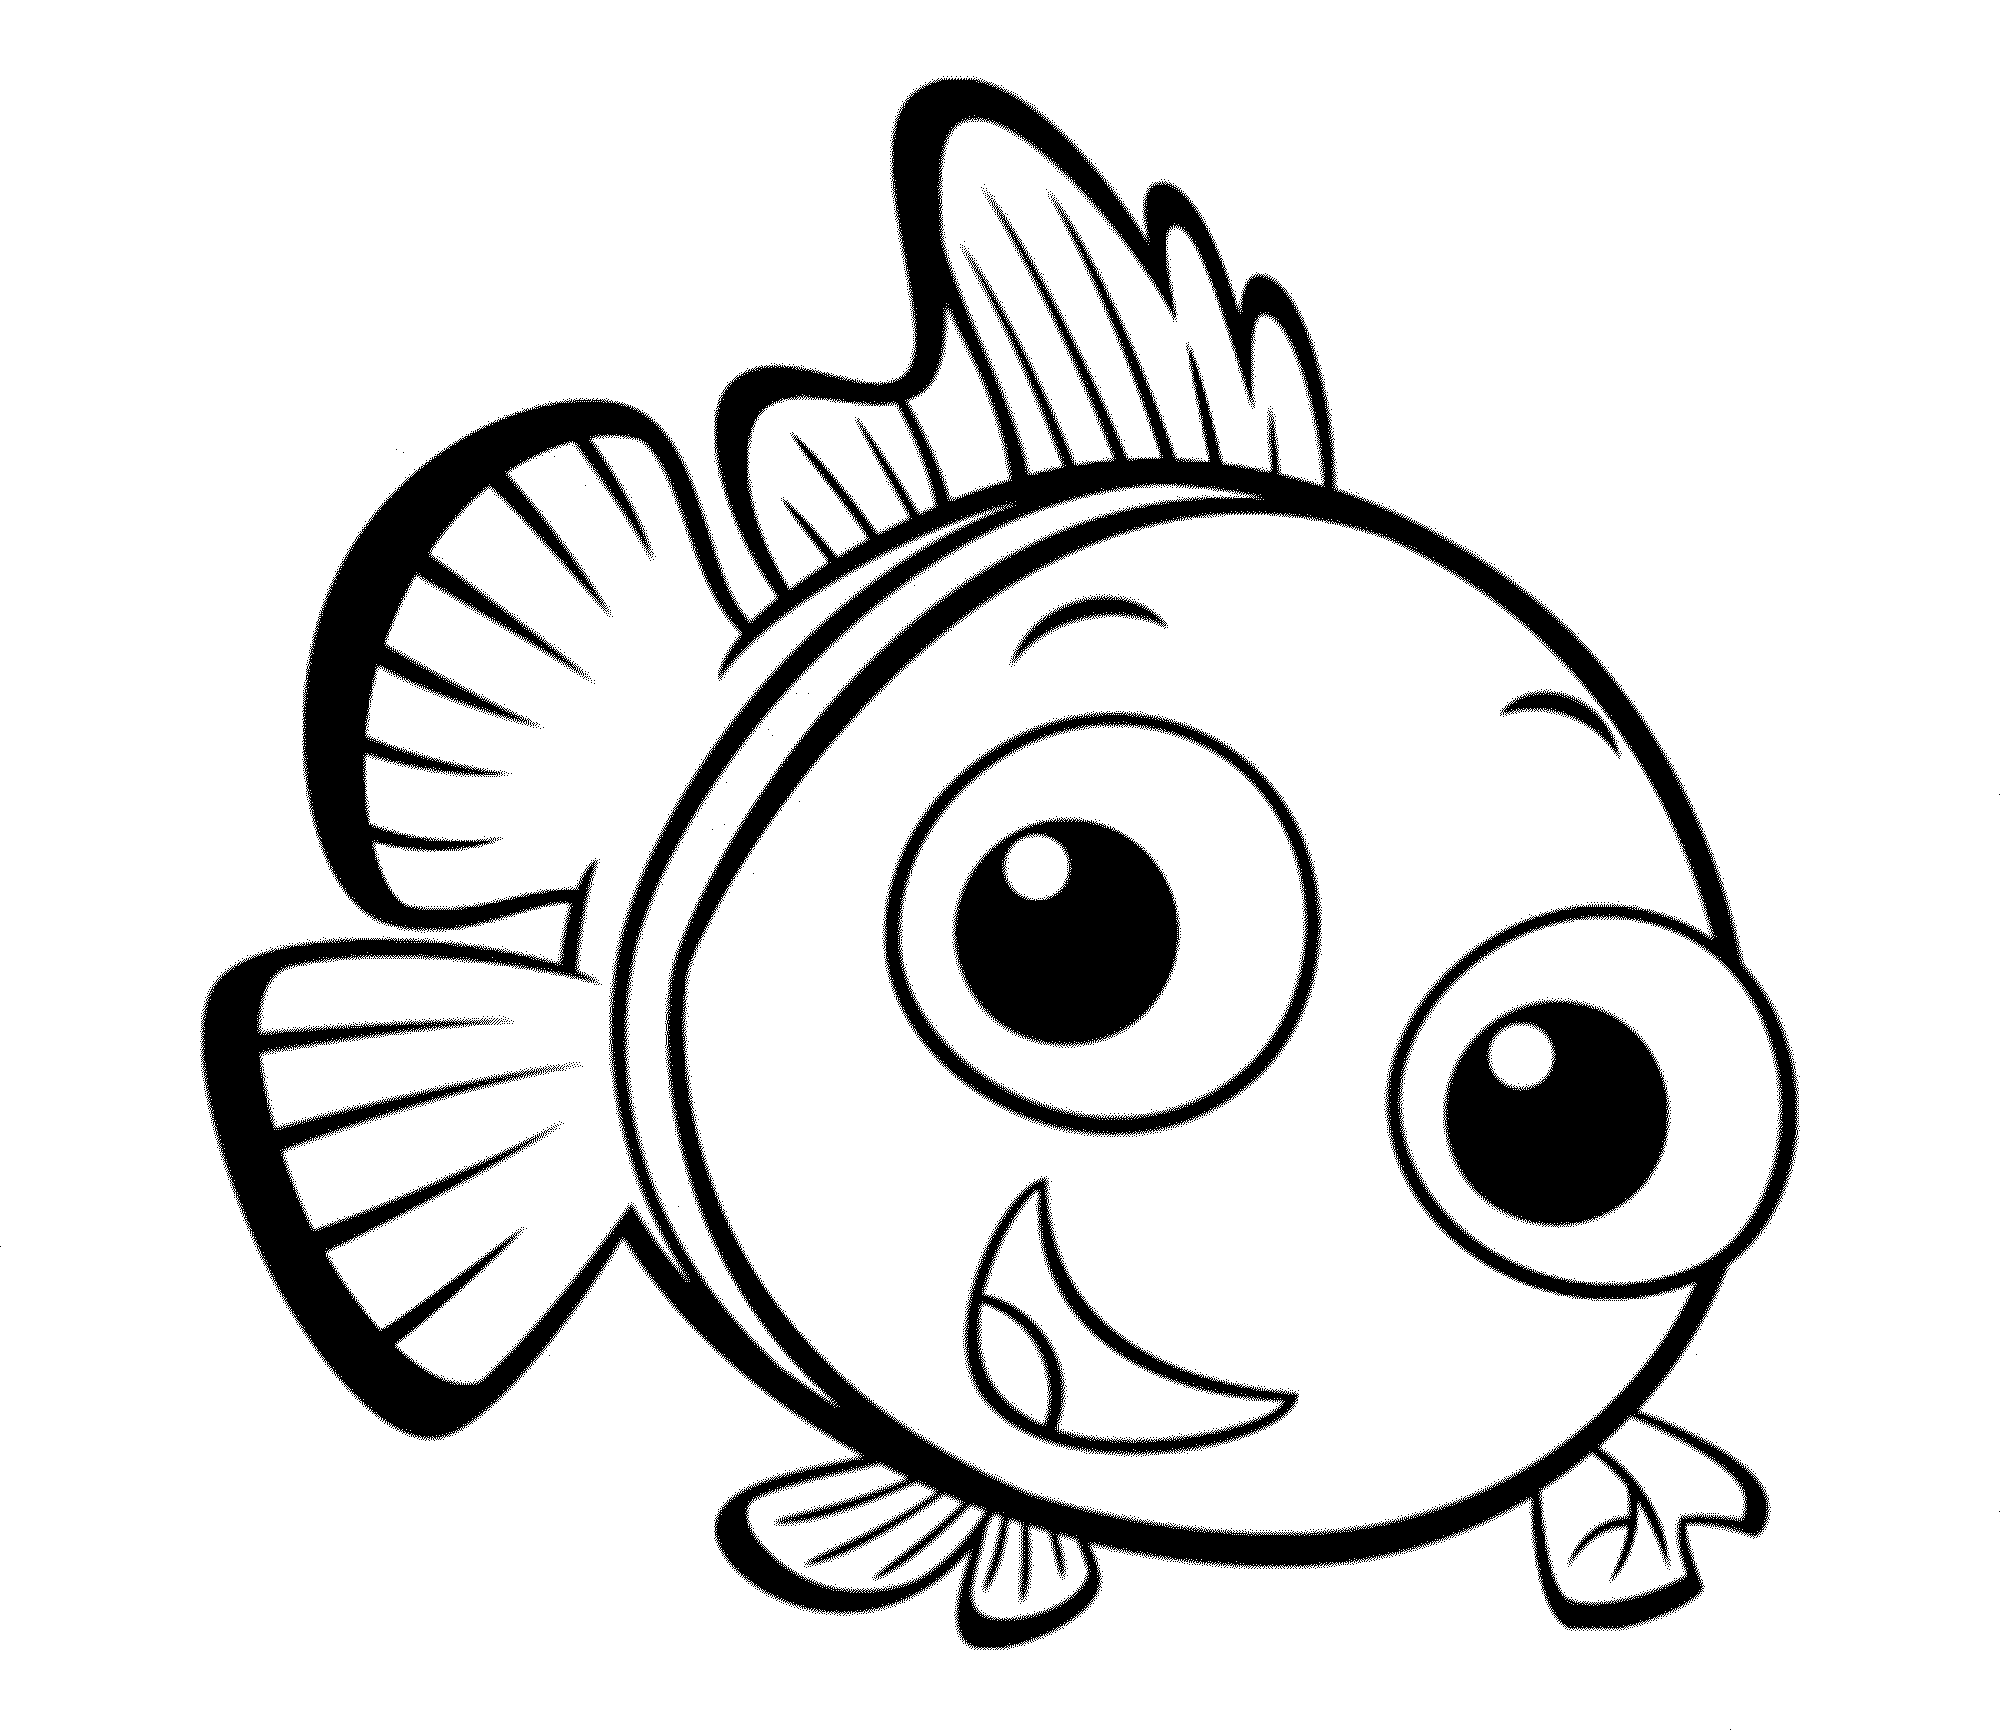 easy fish coloring pages four fish coloring printables to print or download coloring fish easy pages